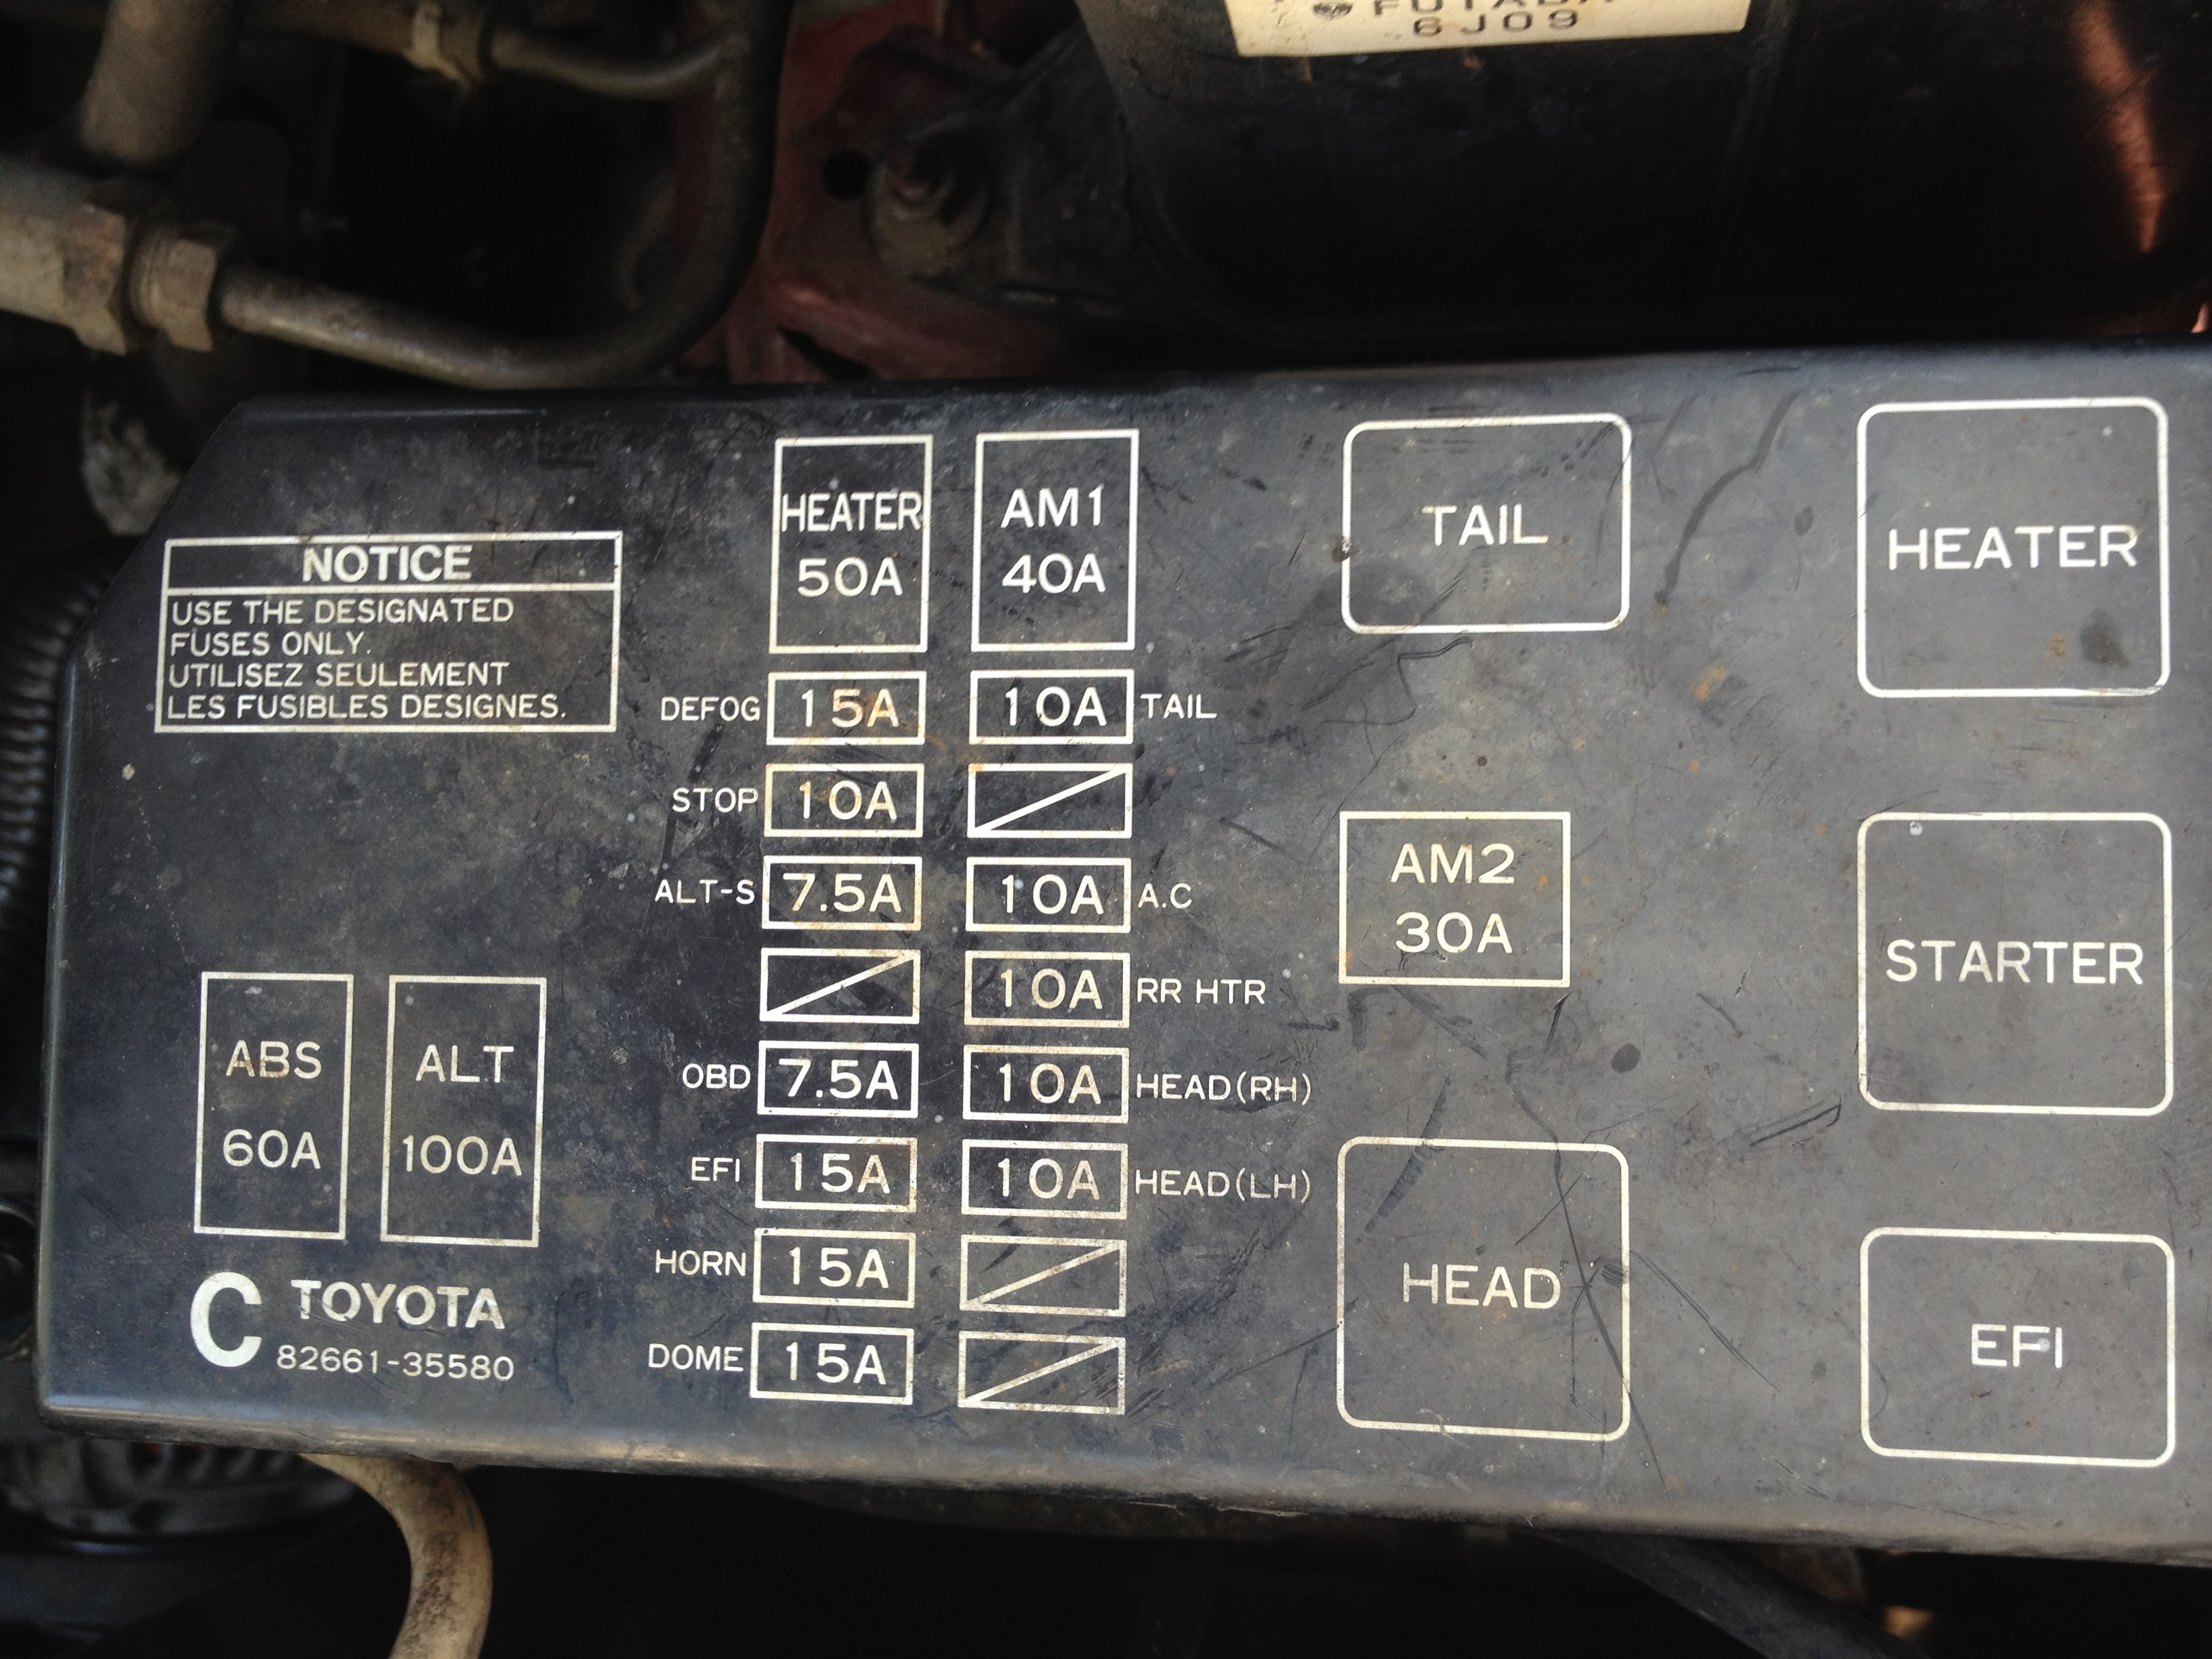 97 camry window wiring diagram